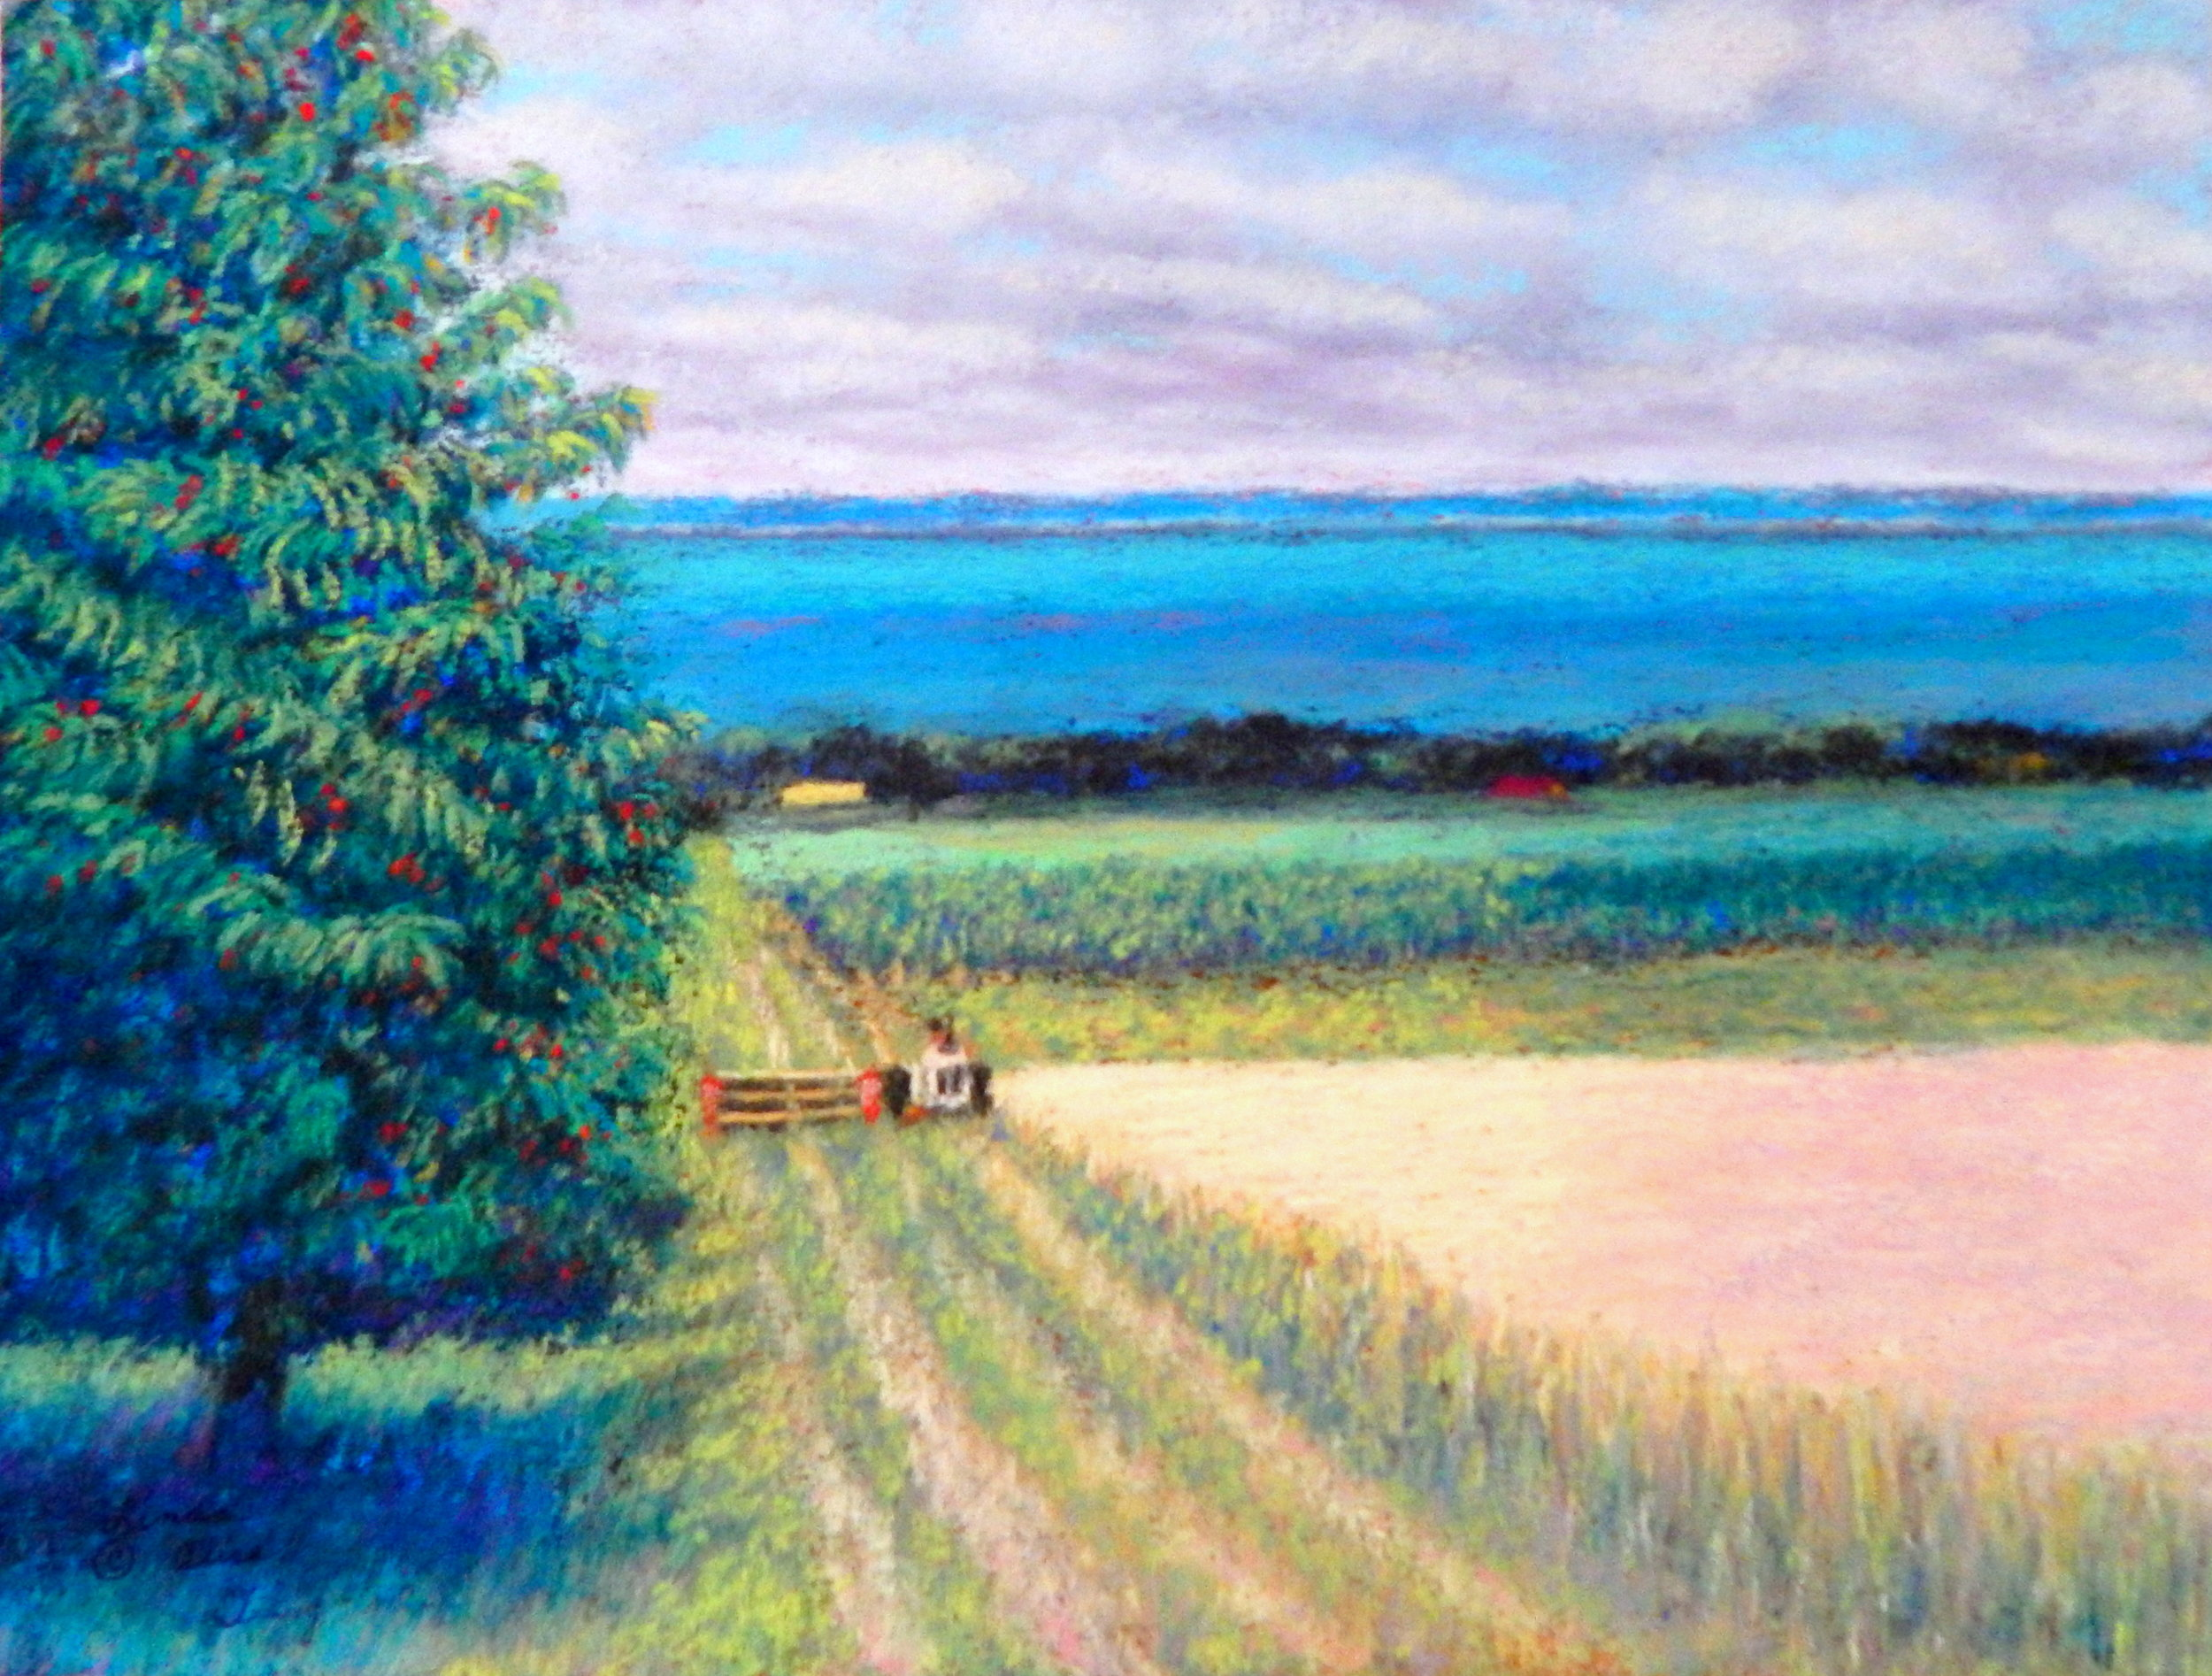 "LINDA ALICE DEWEY - LEELANAU'S RESOURCESIn the mid-1990s, I was in Leelanau for the summer, exploring Schaumburg Road on a beautiful July day, when I came upon this gorgeous scene. At the time, I was selling my photographs, matted, in several shops around the county, so I was equipped with my camera. I stopped to take a shot, and the farmer rode his combine (I think that's what it is—I'm not a farmer!), up to me. He got down from it, came over, and we chatted. He was nice enough to sign the Model Release I fortunately carried with me. It was Ed Kalchick. When I moved here as a year-round resident in 1999, that name would become familiar to me. I painted this from that photo a year ago and named the piece ""Leelanau's Resources."" I think it shows them all. The piece is not large, just 9 x 12, and I have it listed at $350, retail. It is pastel on artists' sandpaper, my favorite medium."